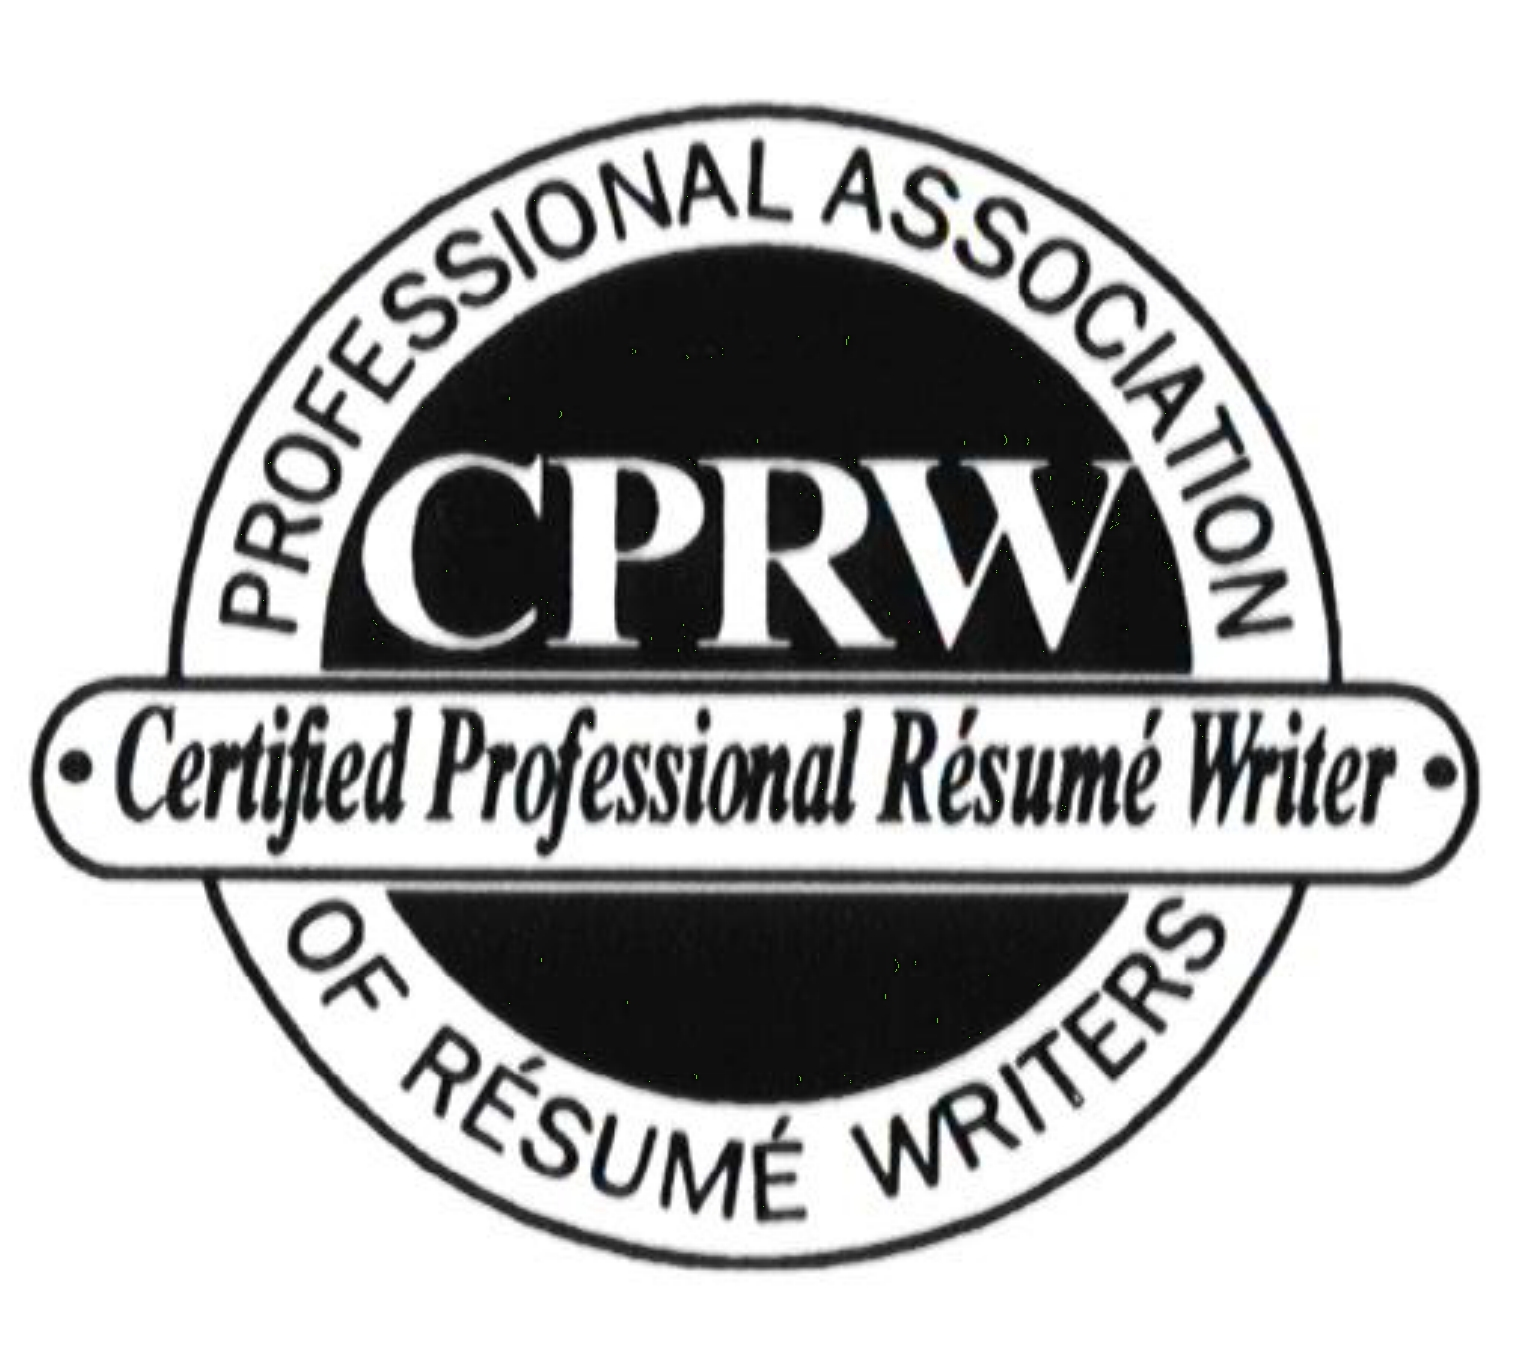 cprw certified professional resume writer - Certified Writer Resume